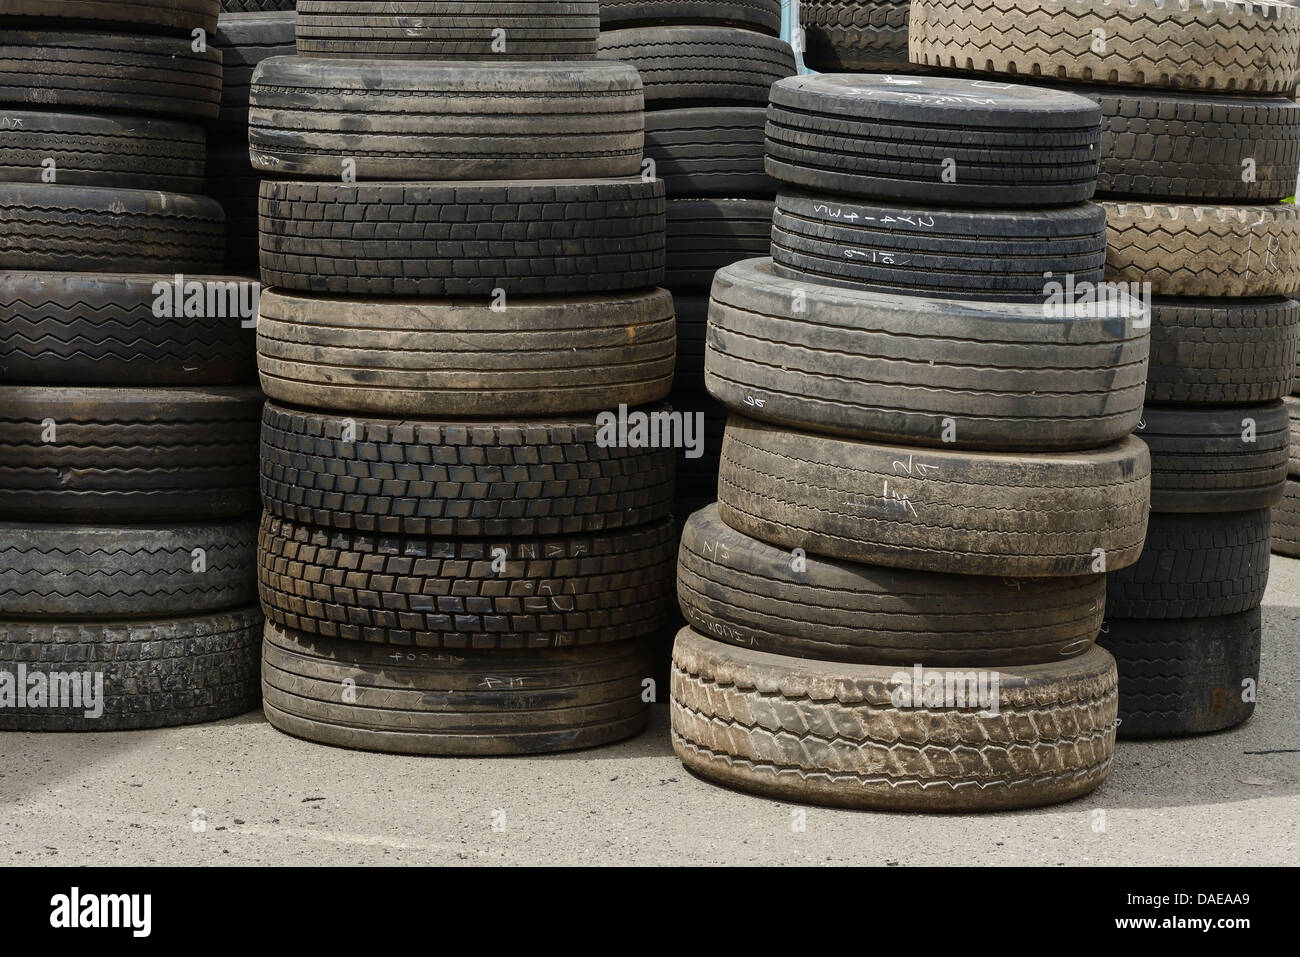 Piles of old tyres - Stock Image